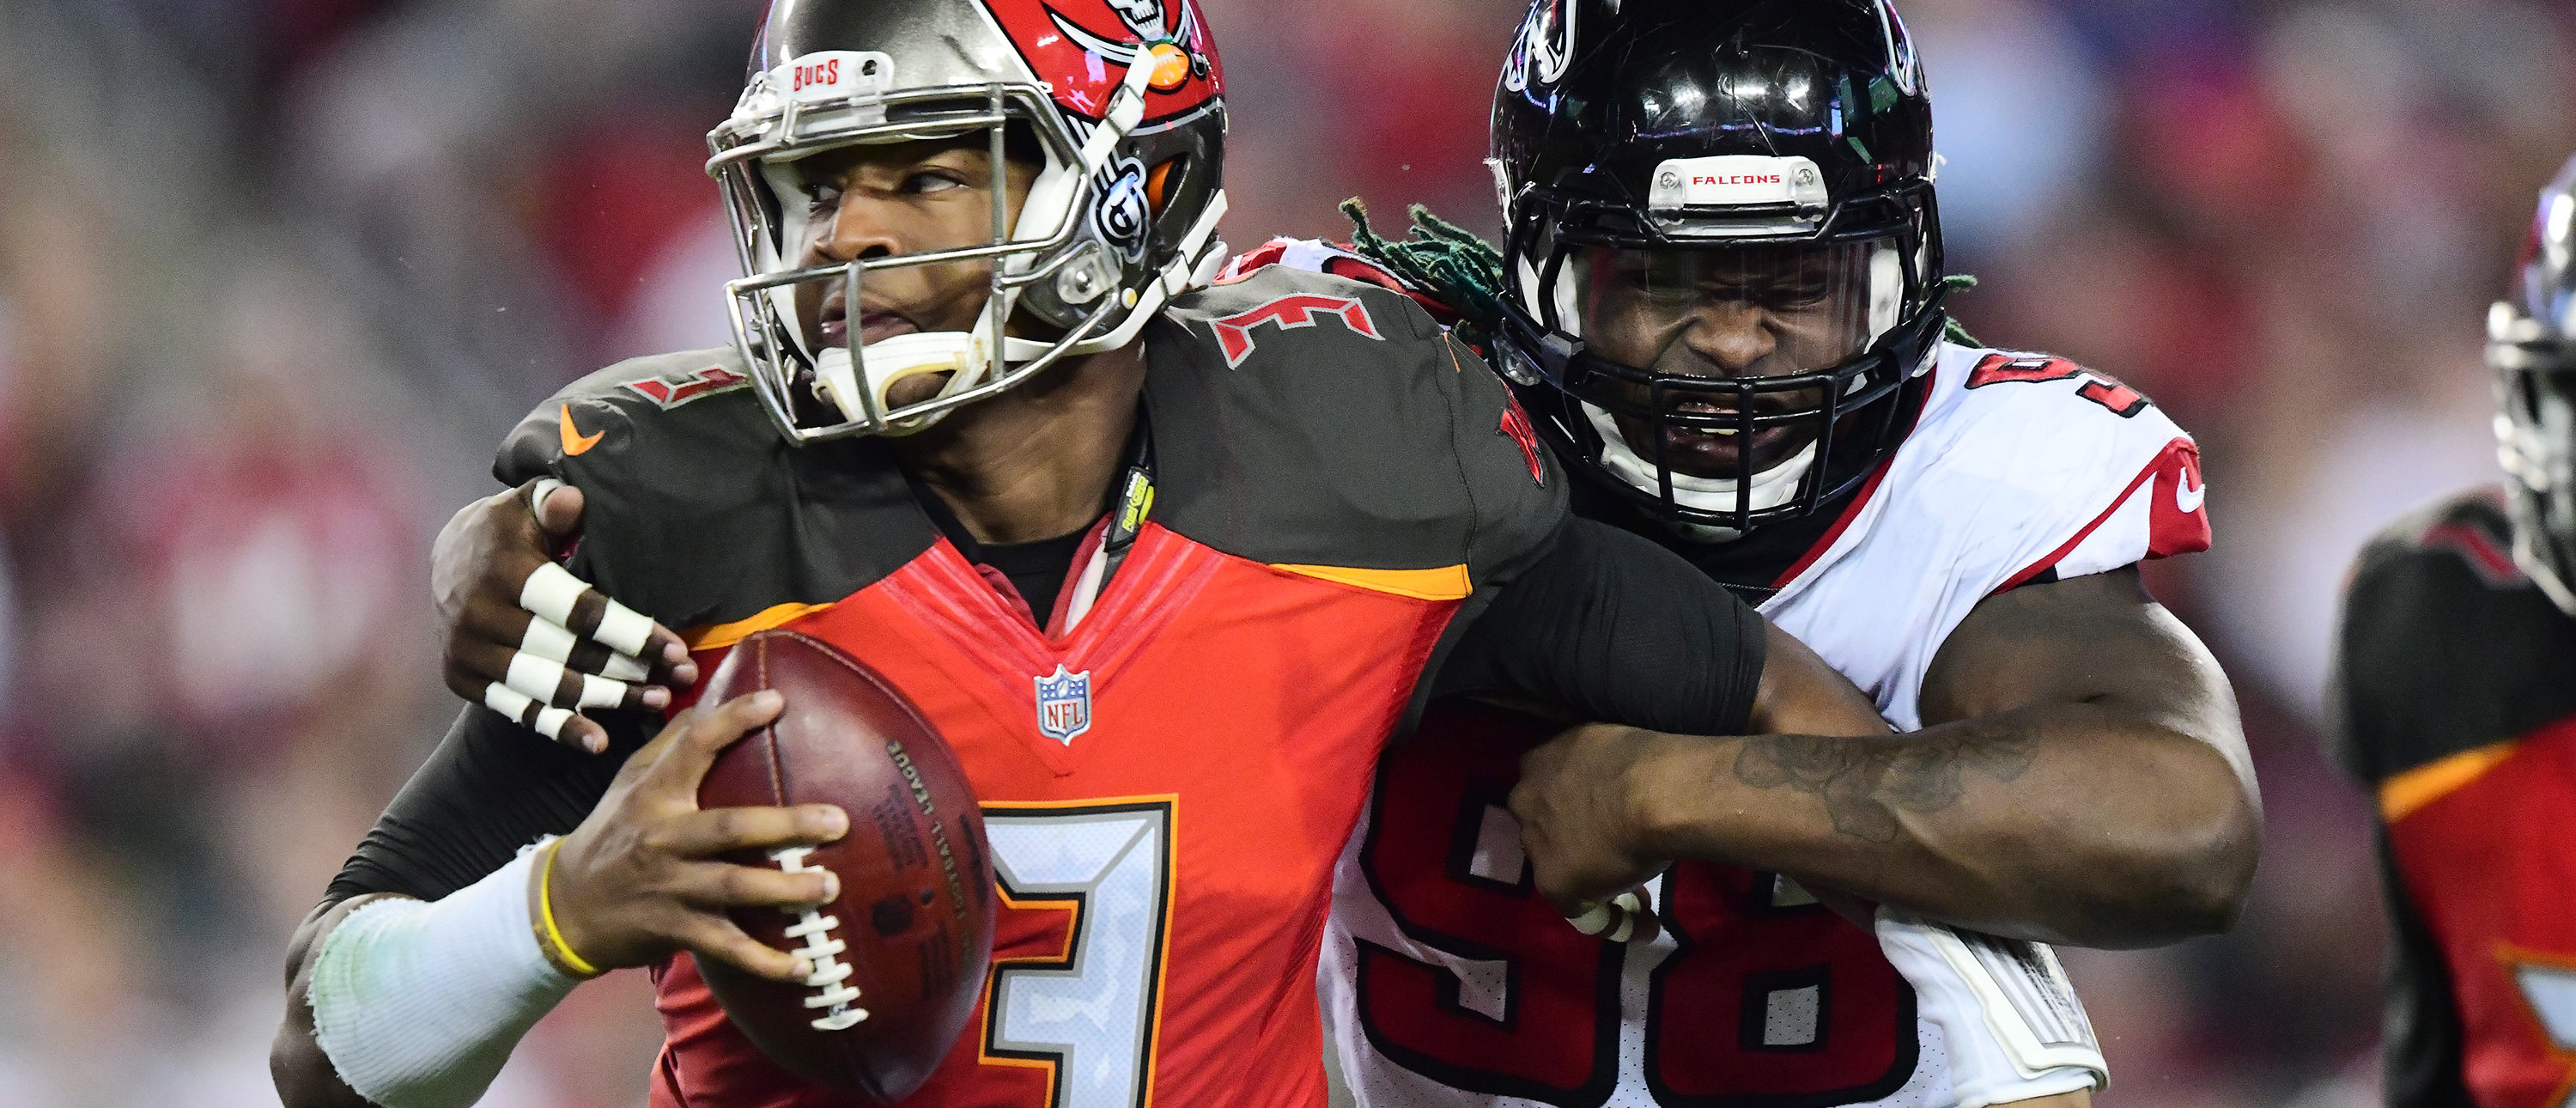 TAMPA, FL - DECEMBER 18: Defensive end Takkarist McKinley #98 of the Atlanta Falcons wraps up quarterback Jameis Winston #3 of the Tampa Bay Buccaneers to cause a fumble in the second quarter on December 18, 2017 at Raymond James Stadium in Tampa, Florida. (Photo by Julio Aguilar/Getty Images)